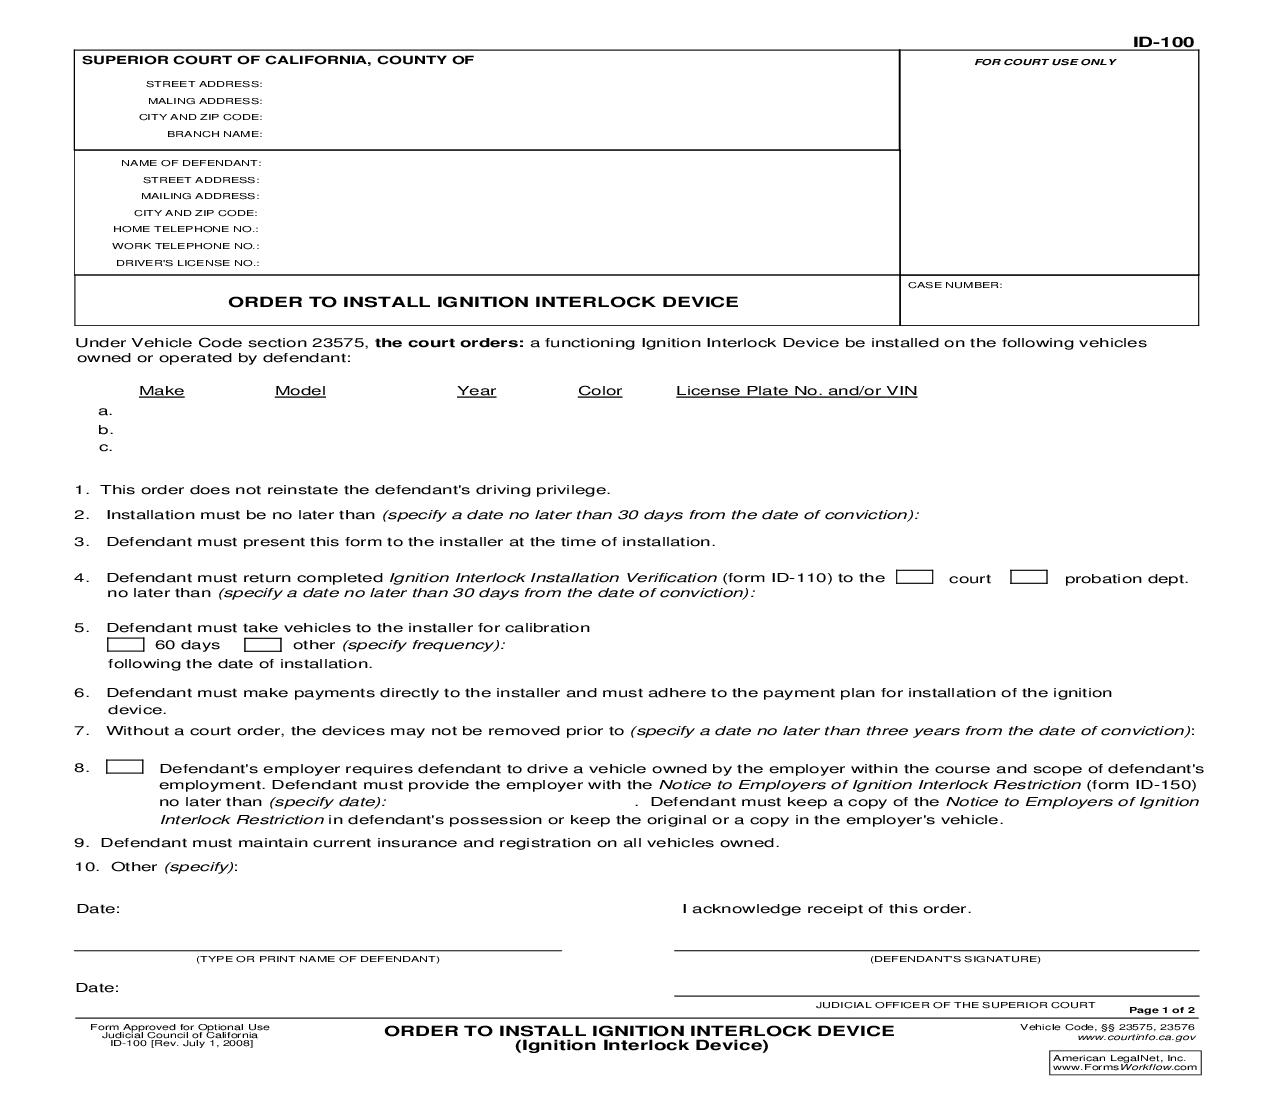 Order To Install Ignition Interlock Device (Ignition Interlock Device) {ID-100} | Pdf Fpdf Doc Docx | California